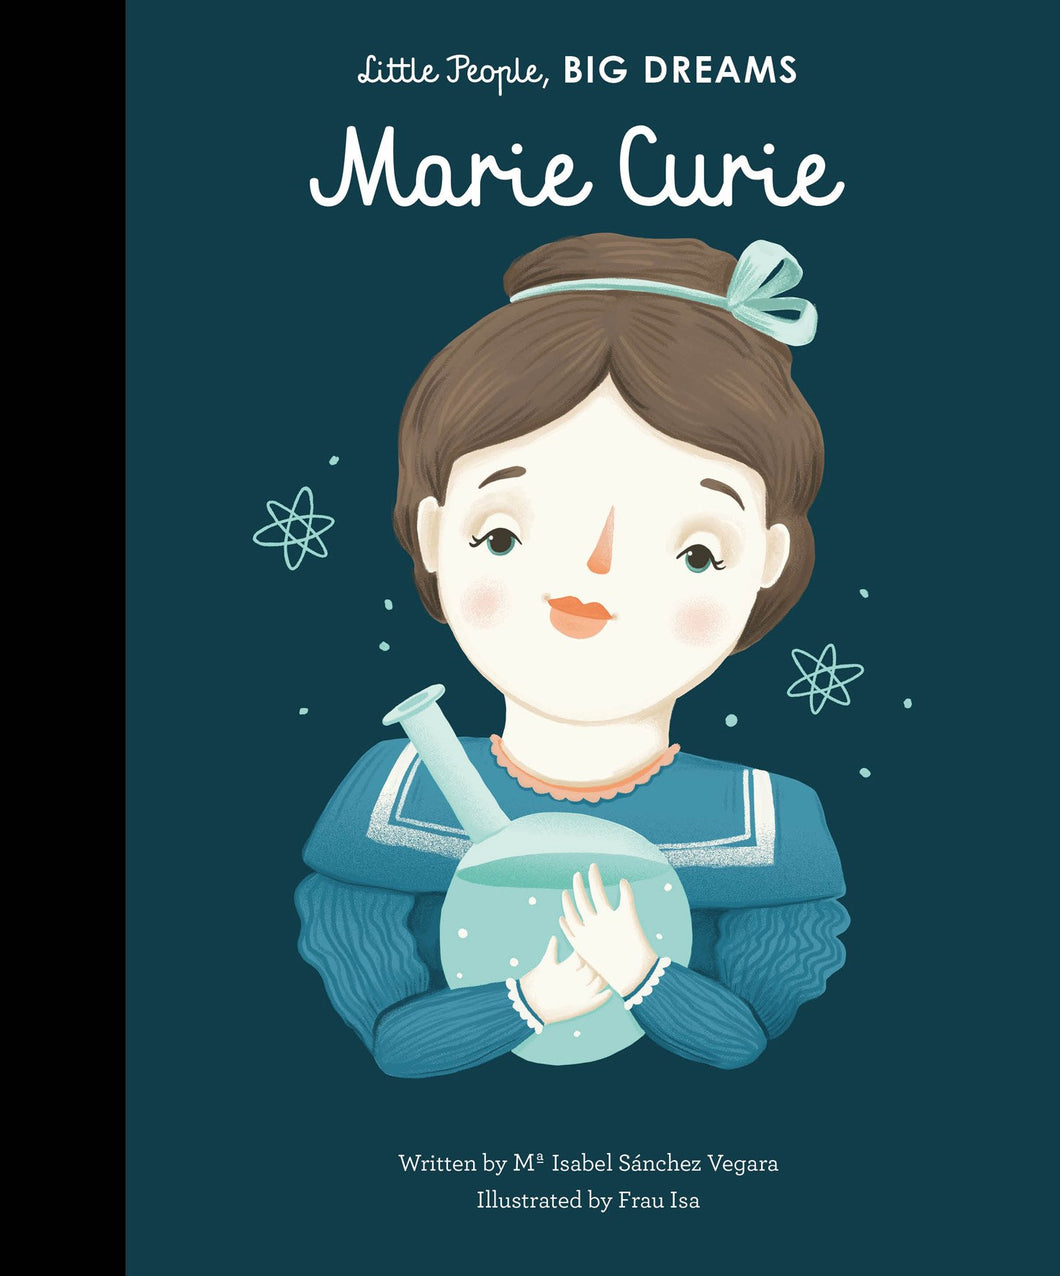 Little People Big Dreams: Marie Curie Books GrumpyKid